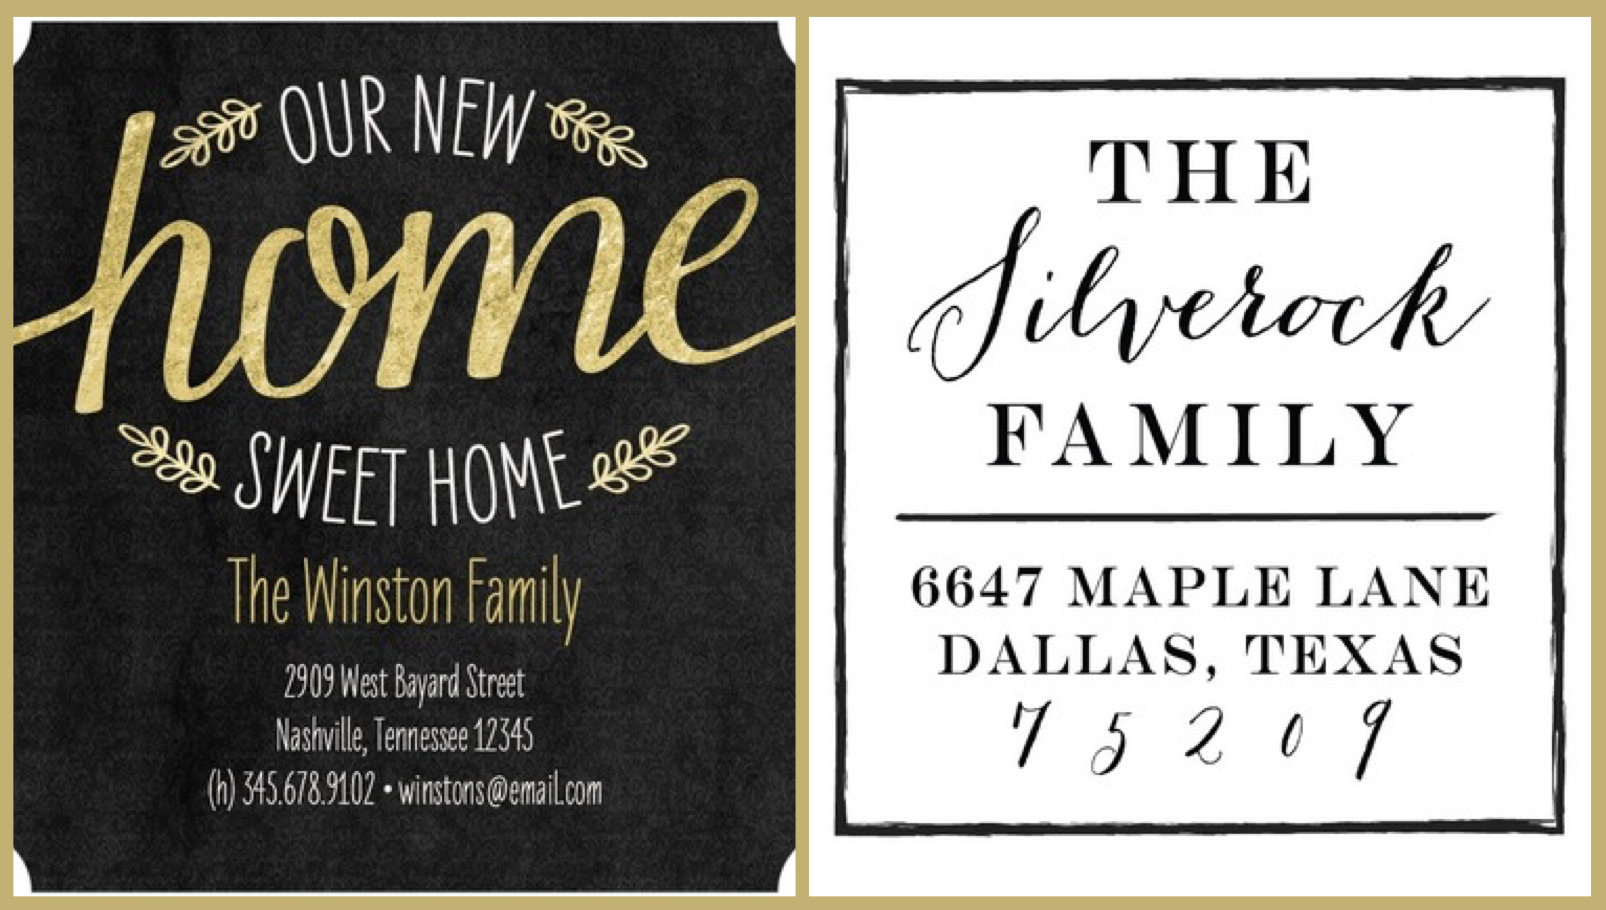 Moving Cards & Address Stamps are Great Realtor Closing Gifts